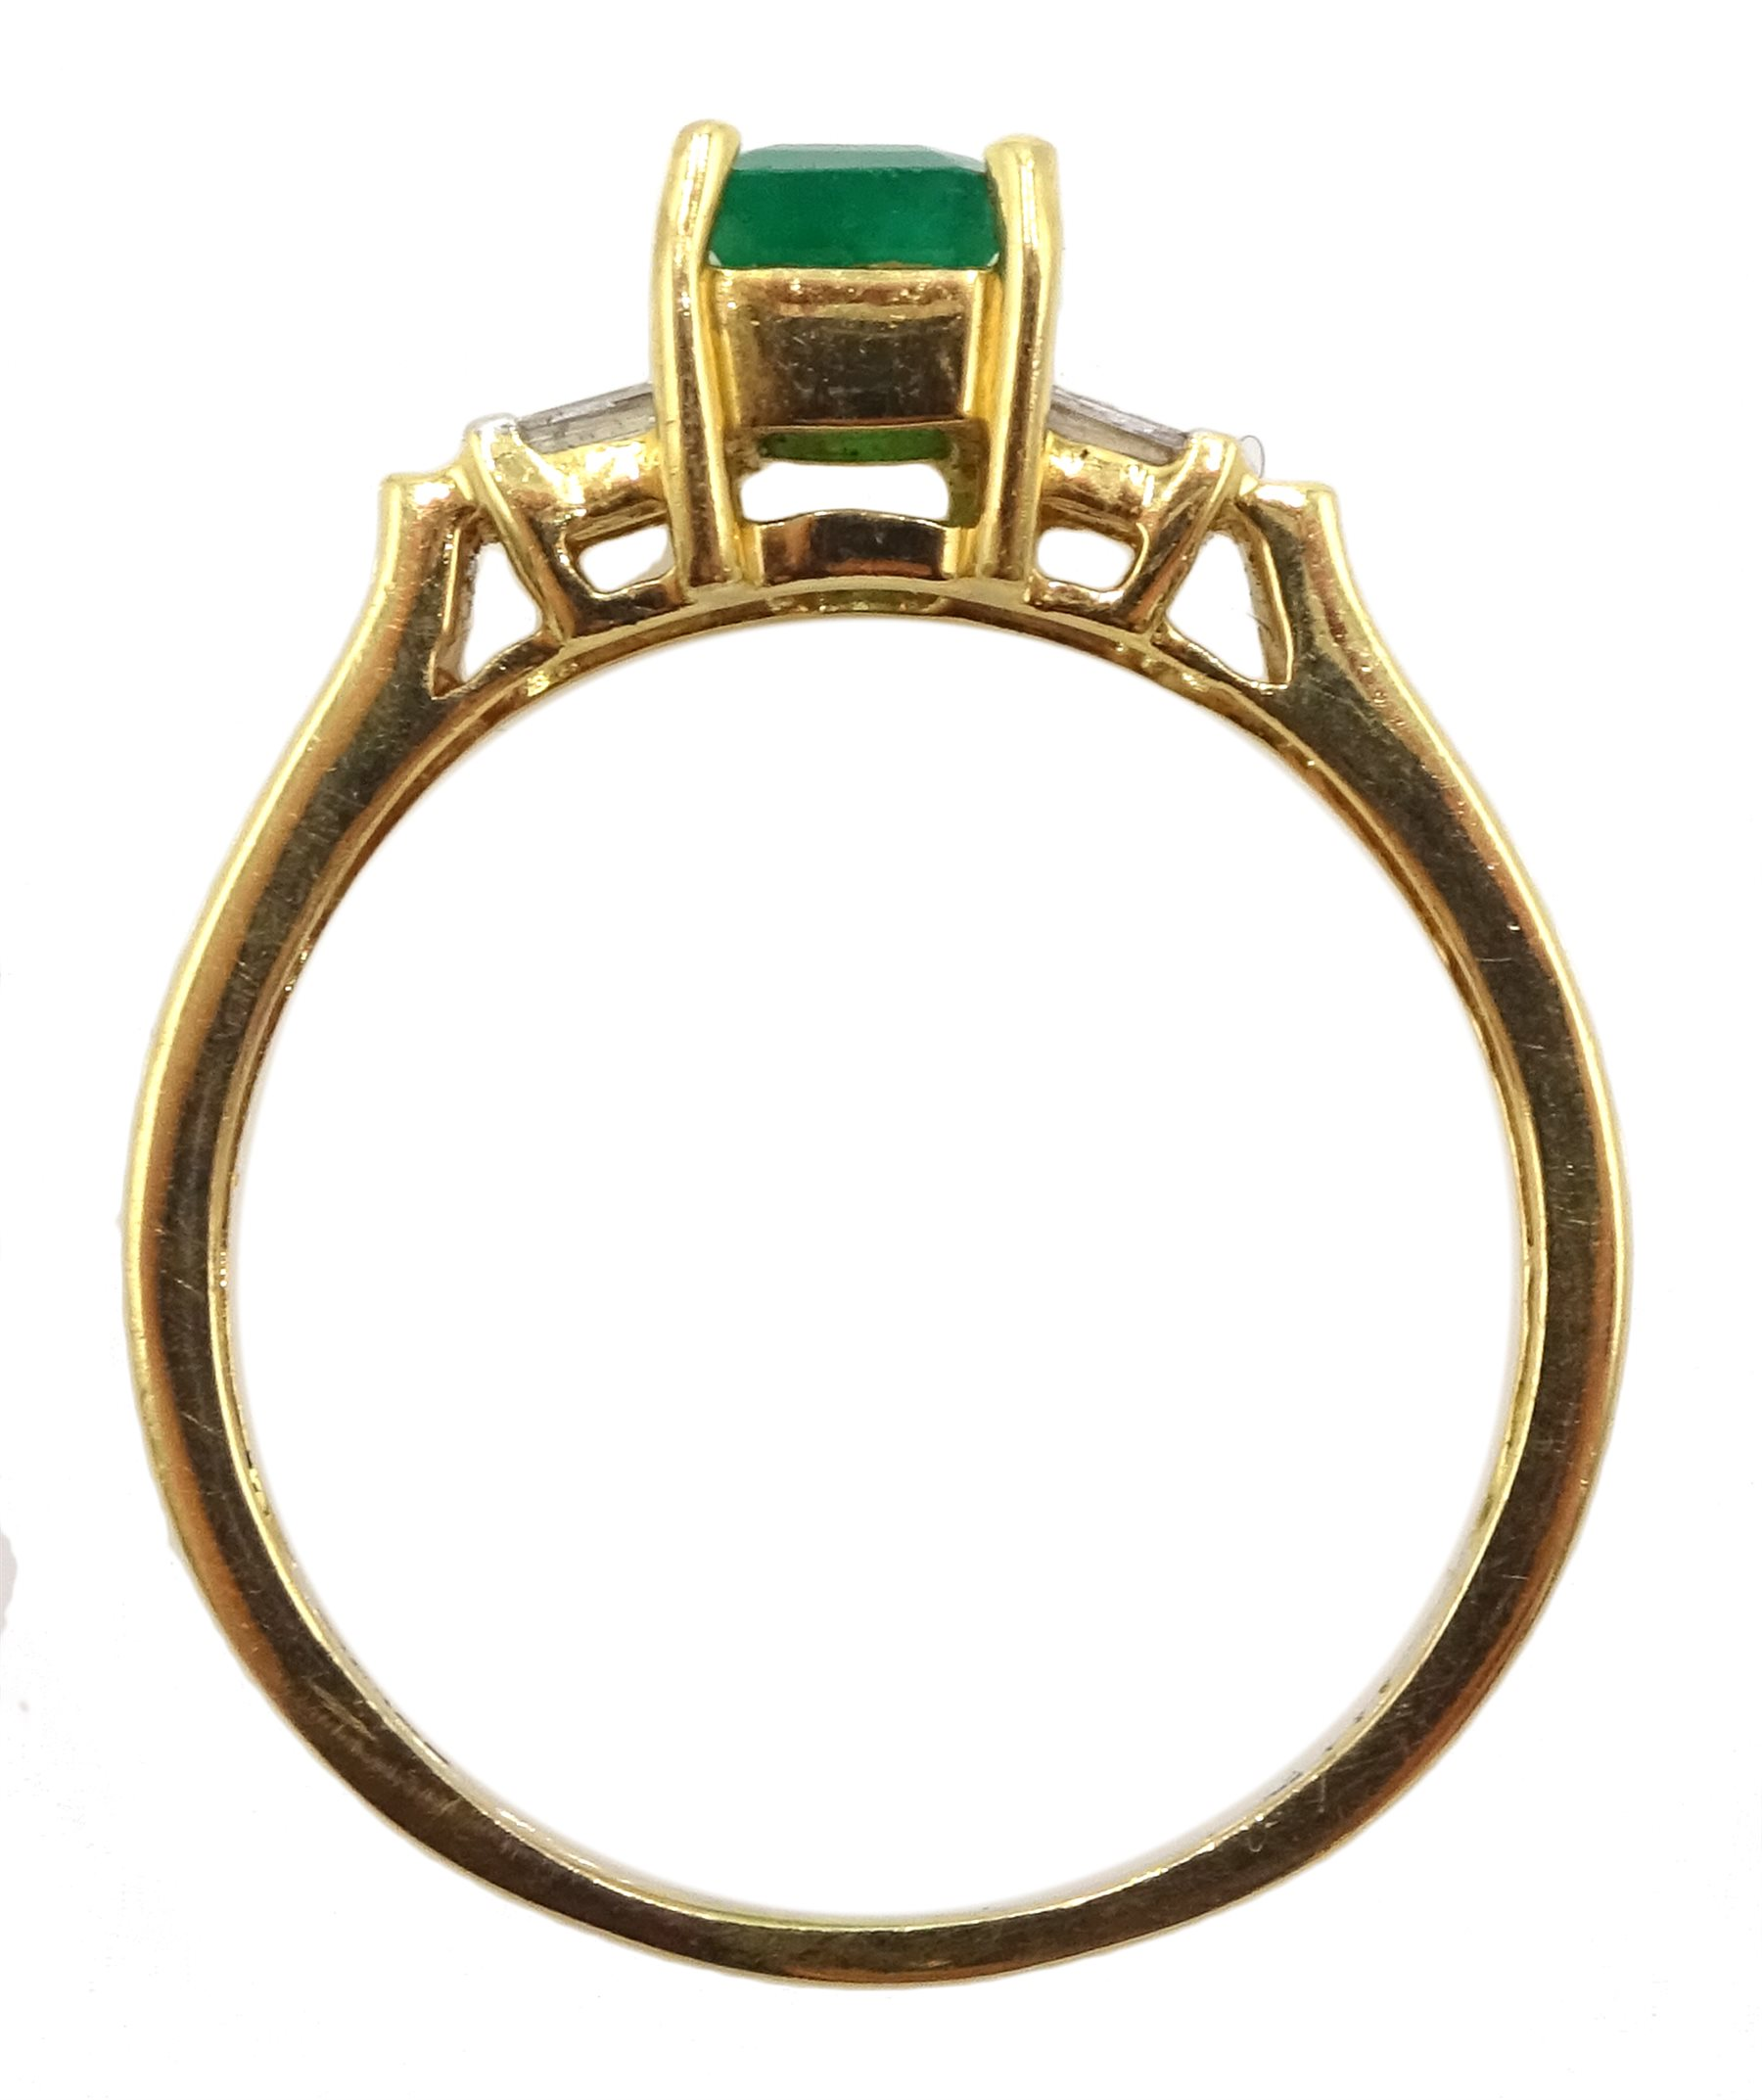 18ct gold emerald ring - Image 4 of 4